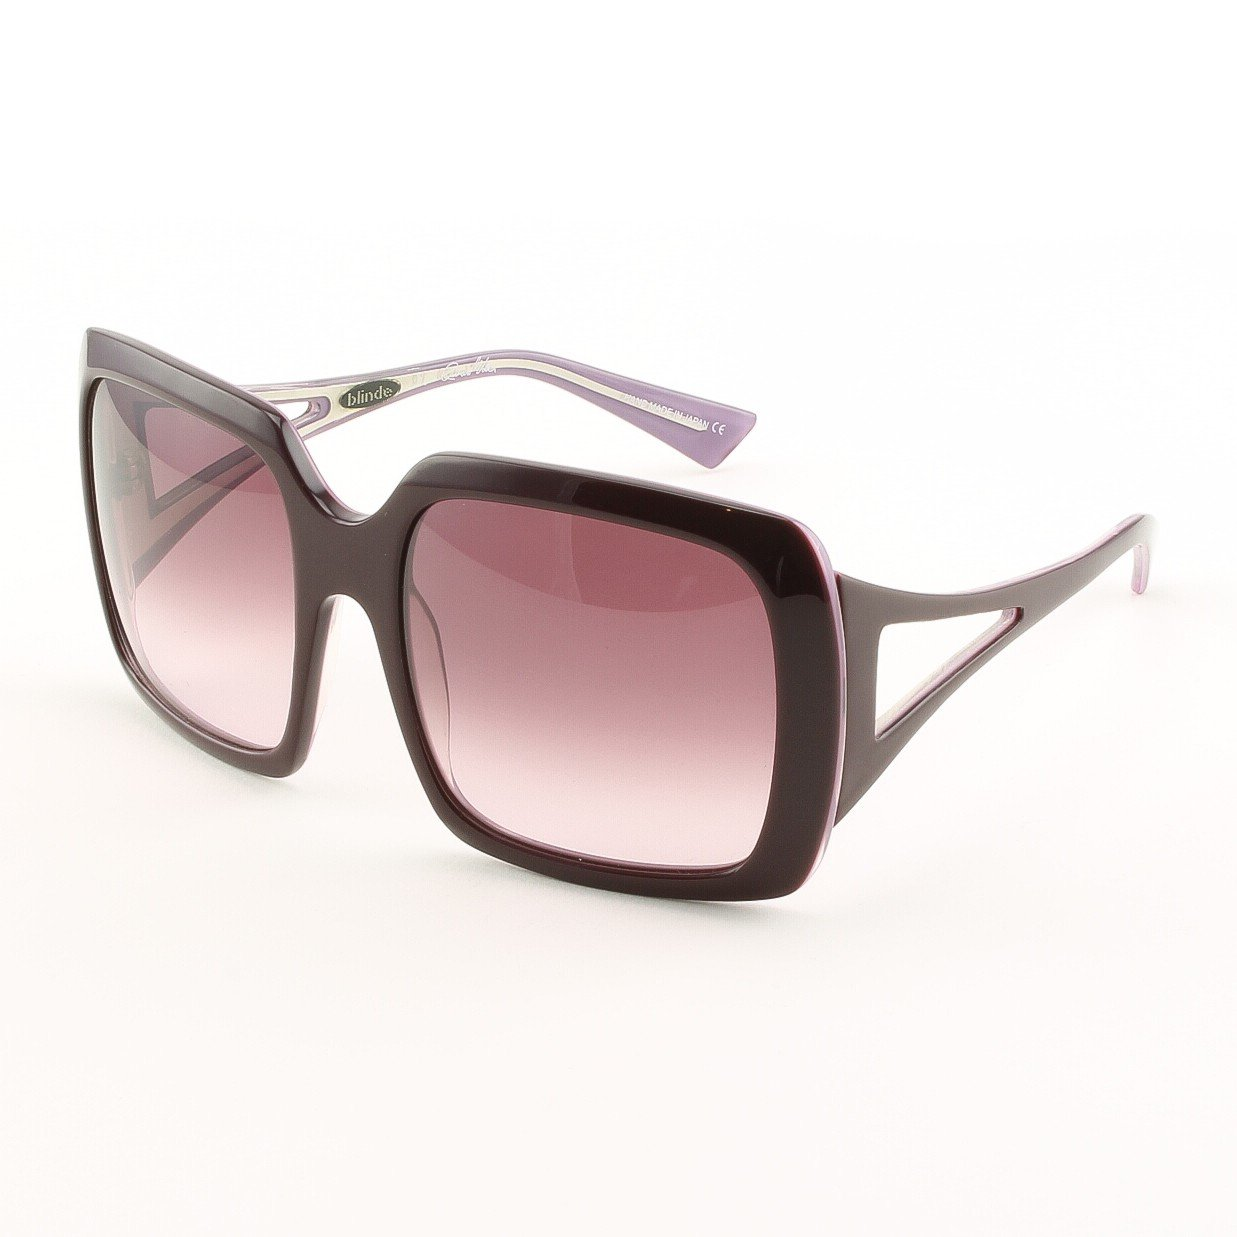 Blinde Surreal Deal Women's Sunglasses Col. Violets with Pink Gradient Lenses